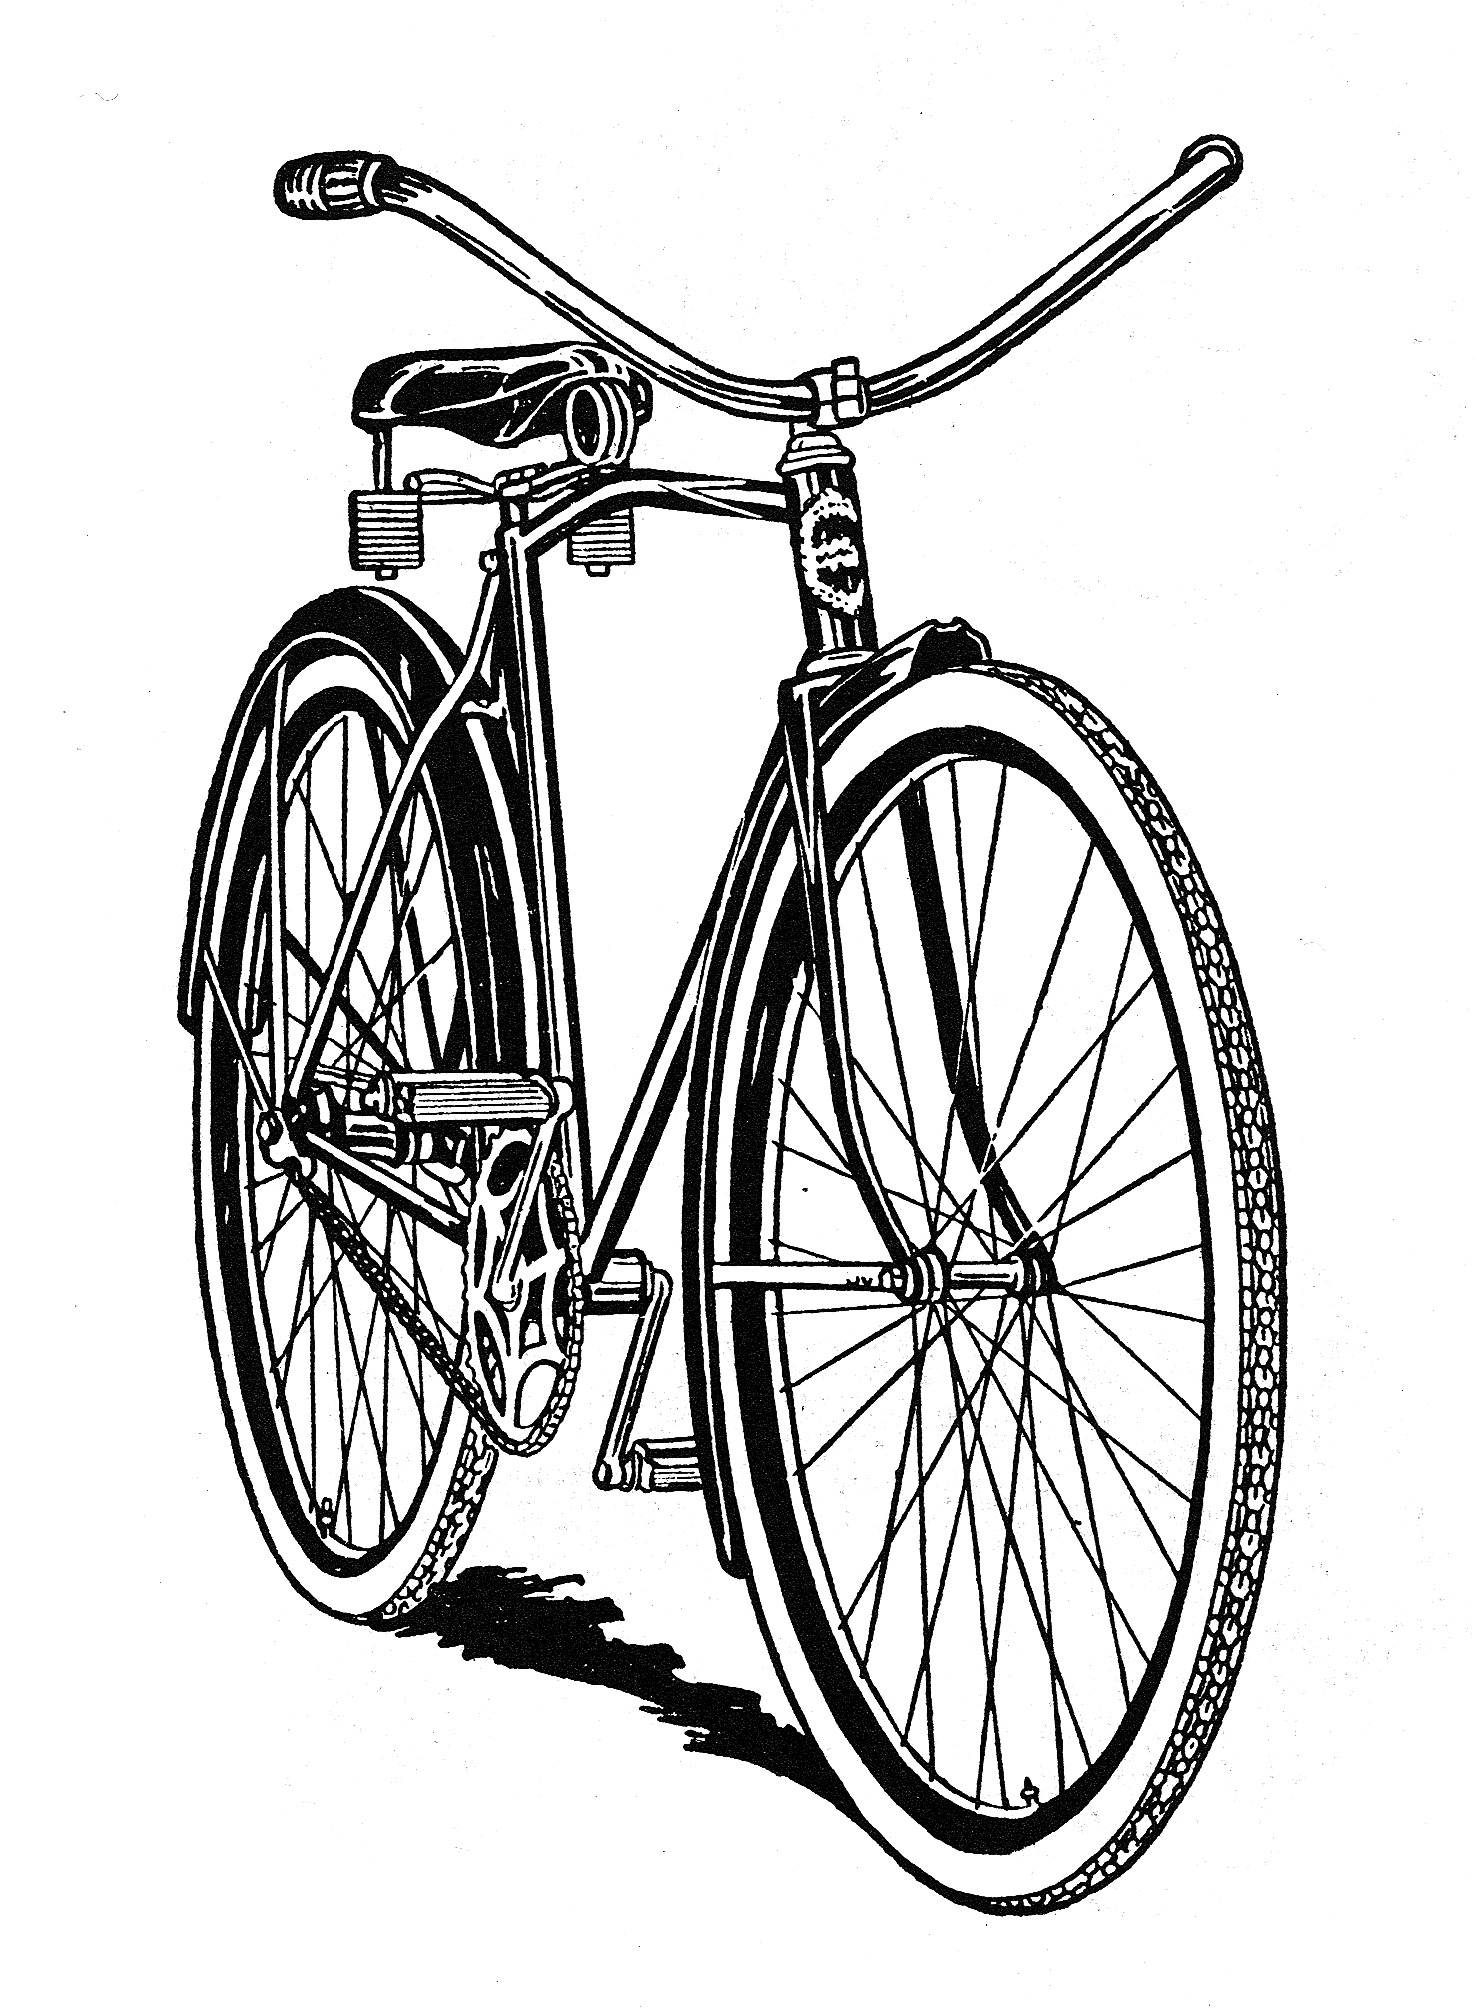 Bicycle Clipart Black And White | Free download best Bicycle ... for Bicycle Clipart Black And White  173lyp